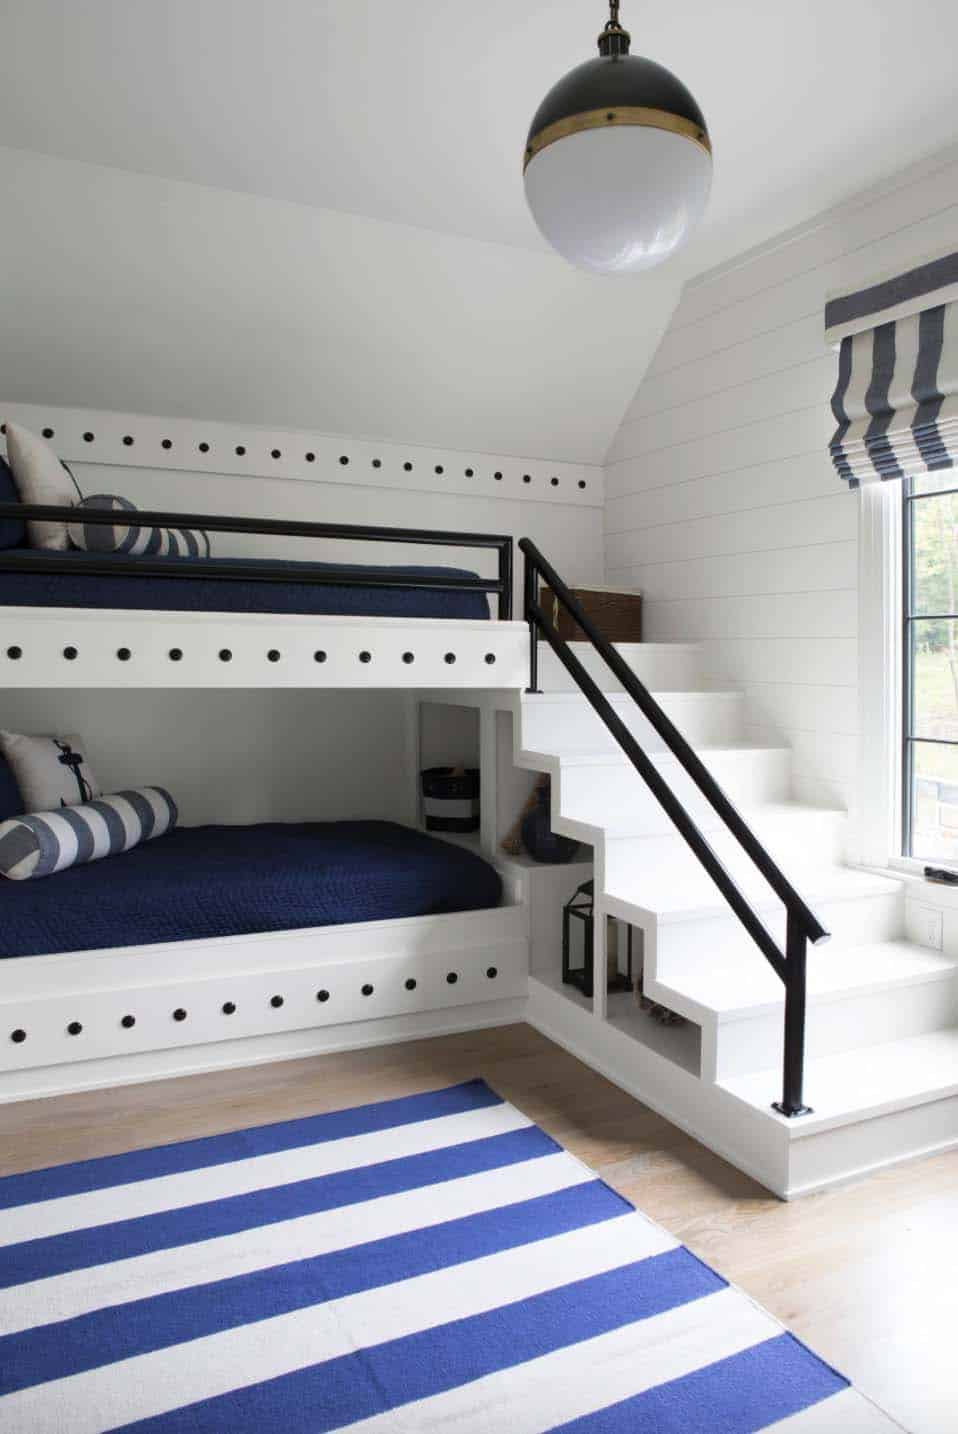 transitional-kids-bunk-bedroom